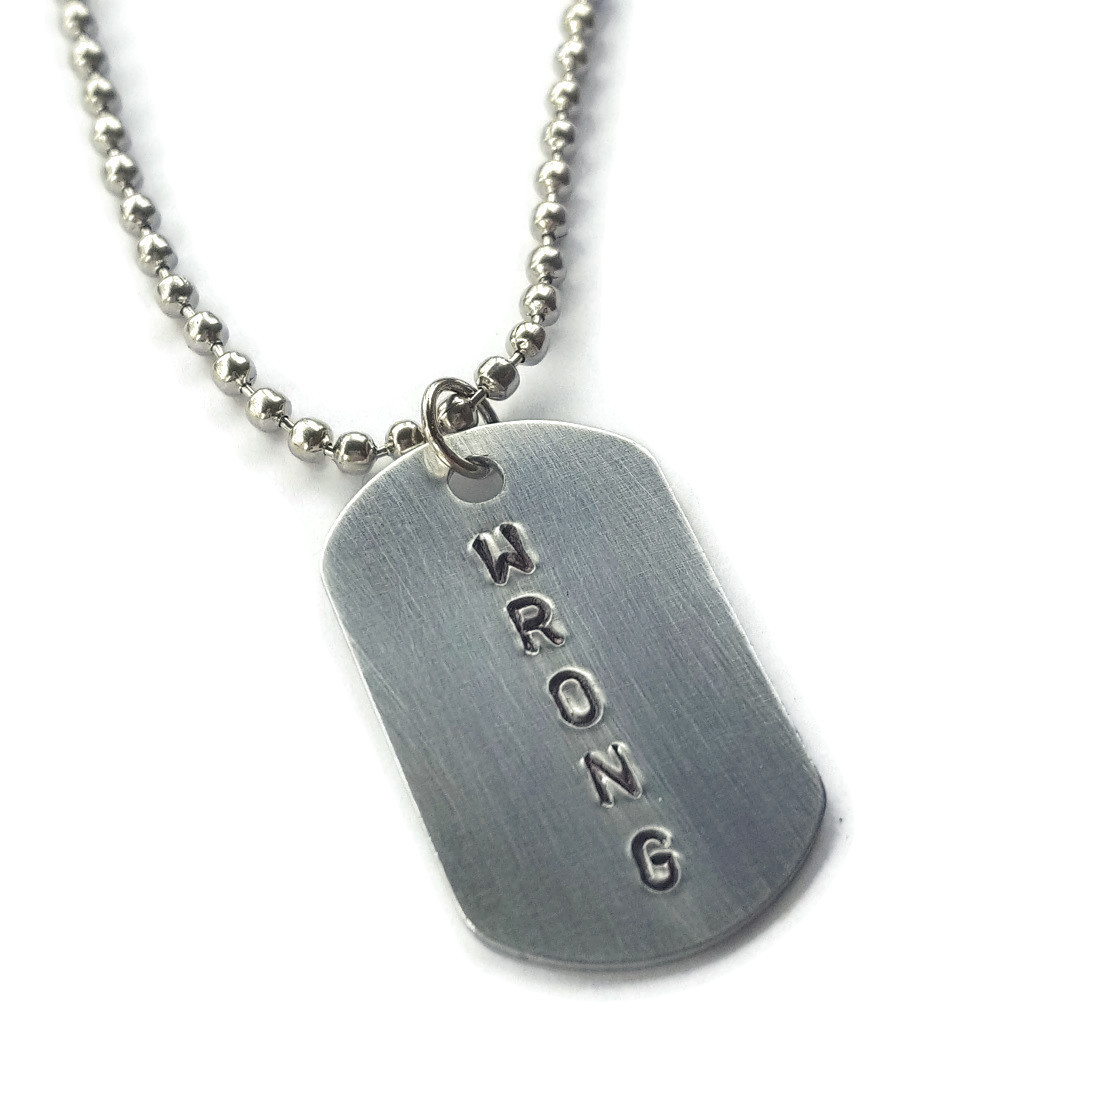 trump-wrong-dog-tag-aluminum-necklace-by-uttal-jewelry.jpg